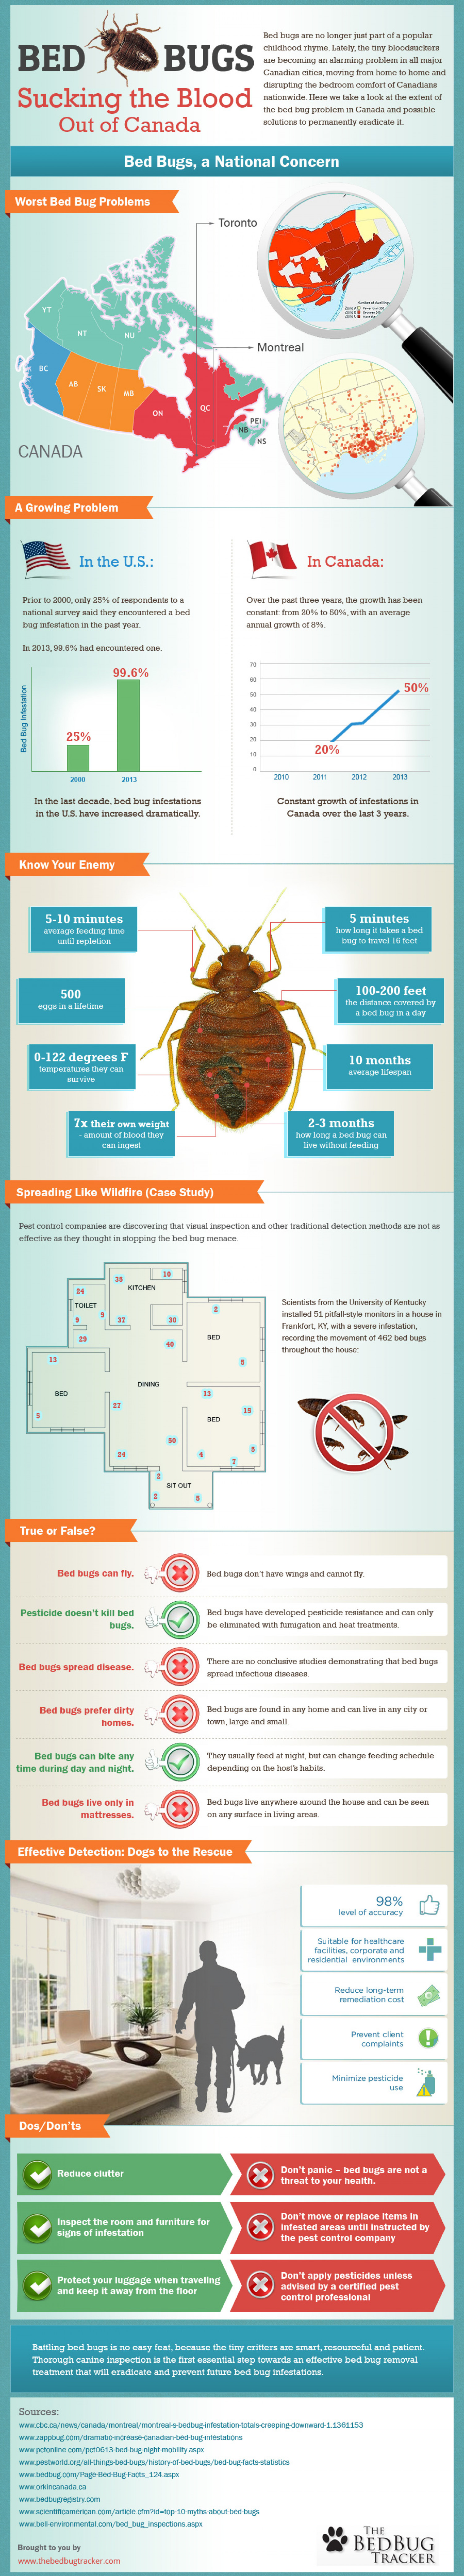 Bed Bugs, Sucking the Blood Out of Canada Infographic